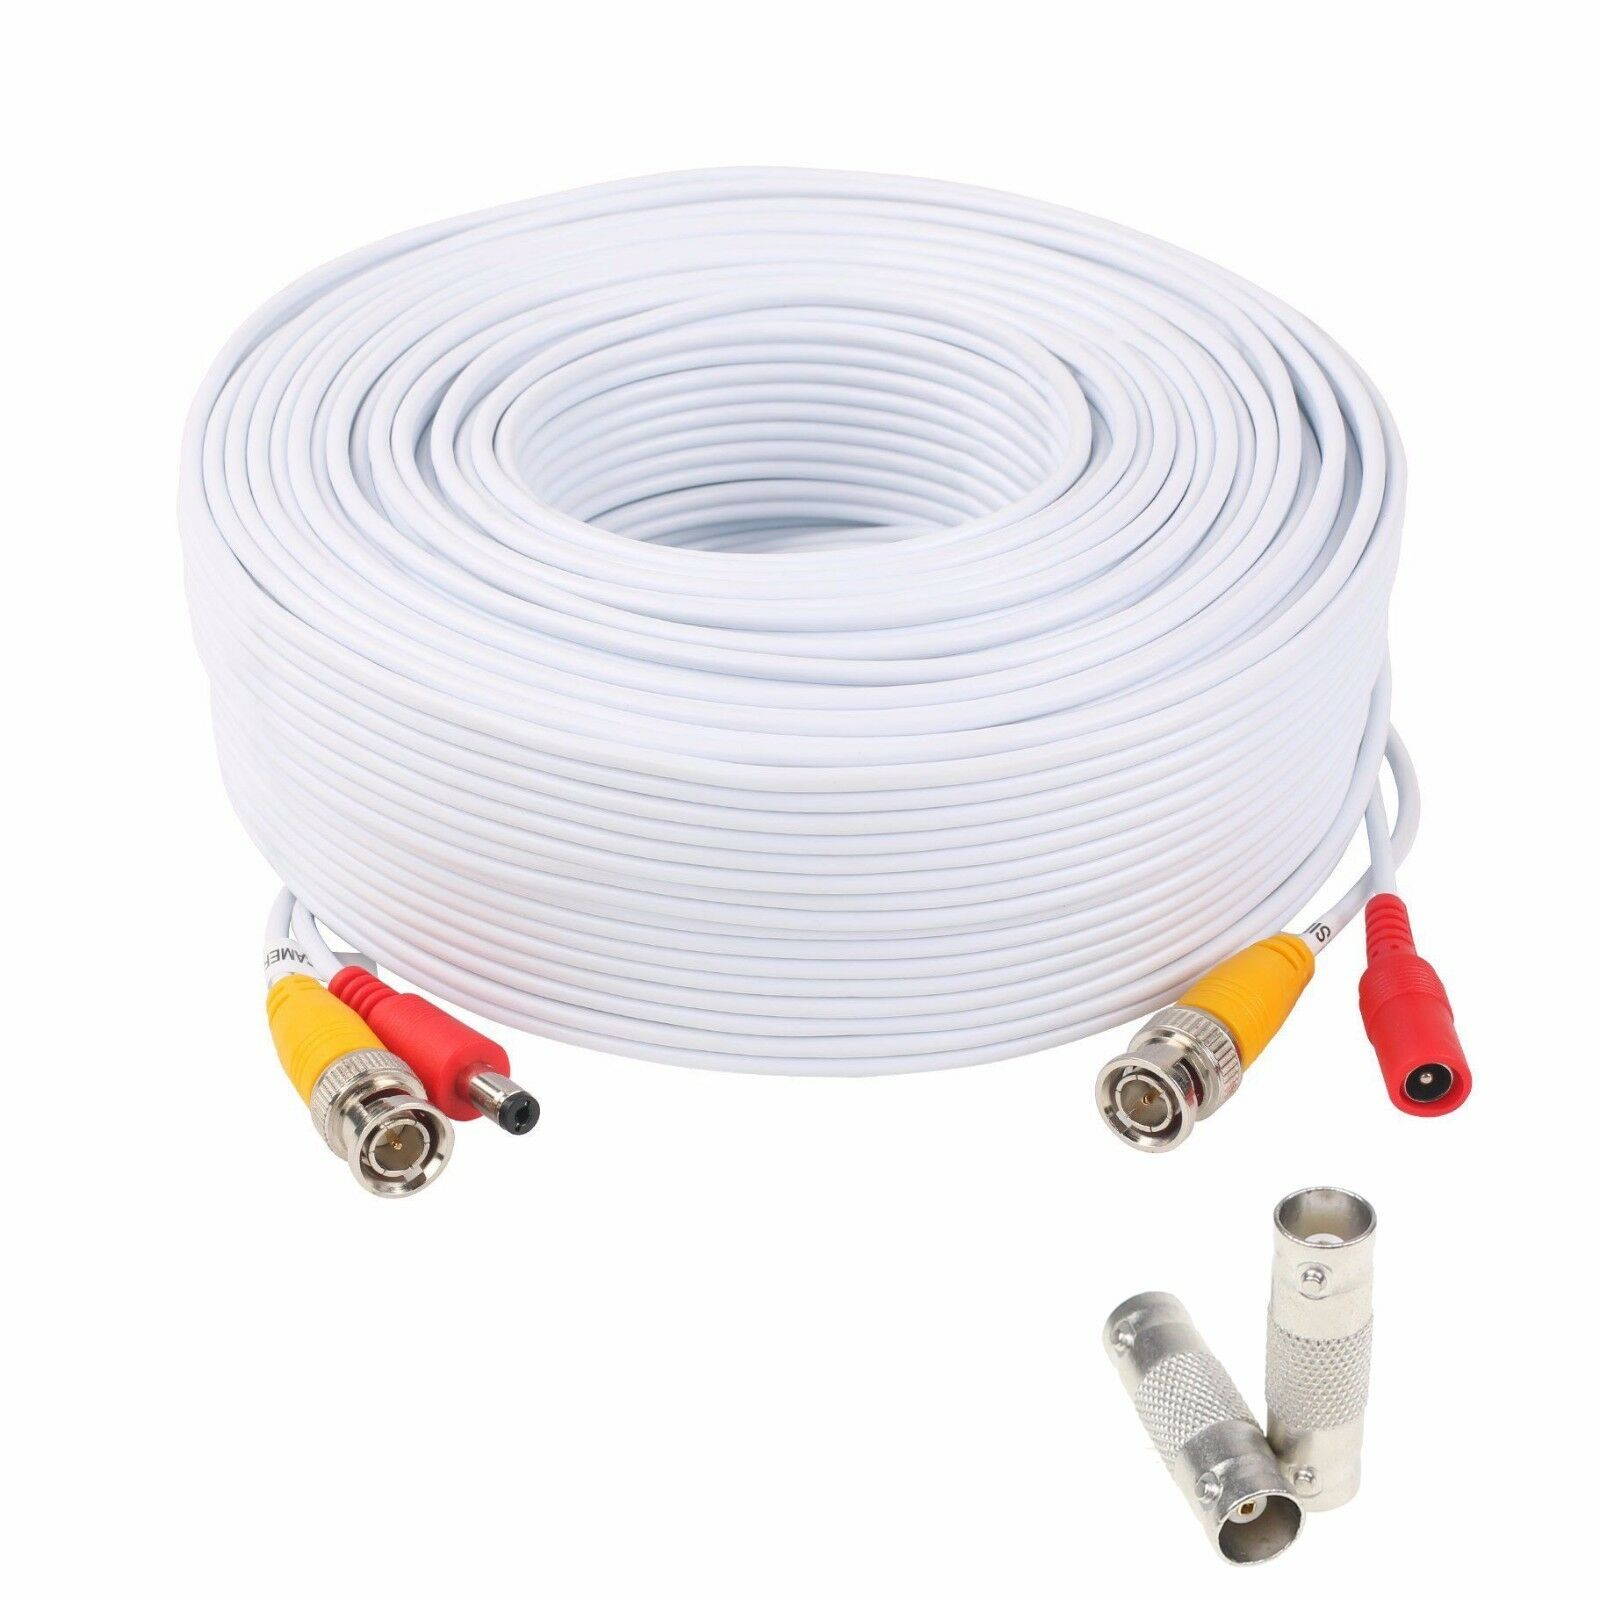 200ft Power Video Security Camera BNC Cable CCTV Wire Cord w